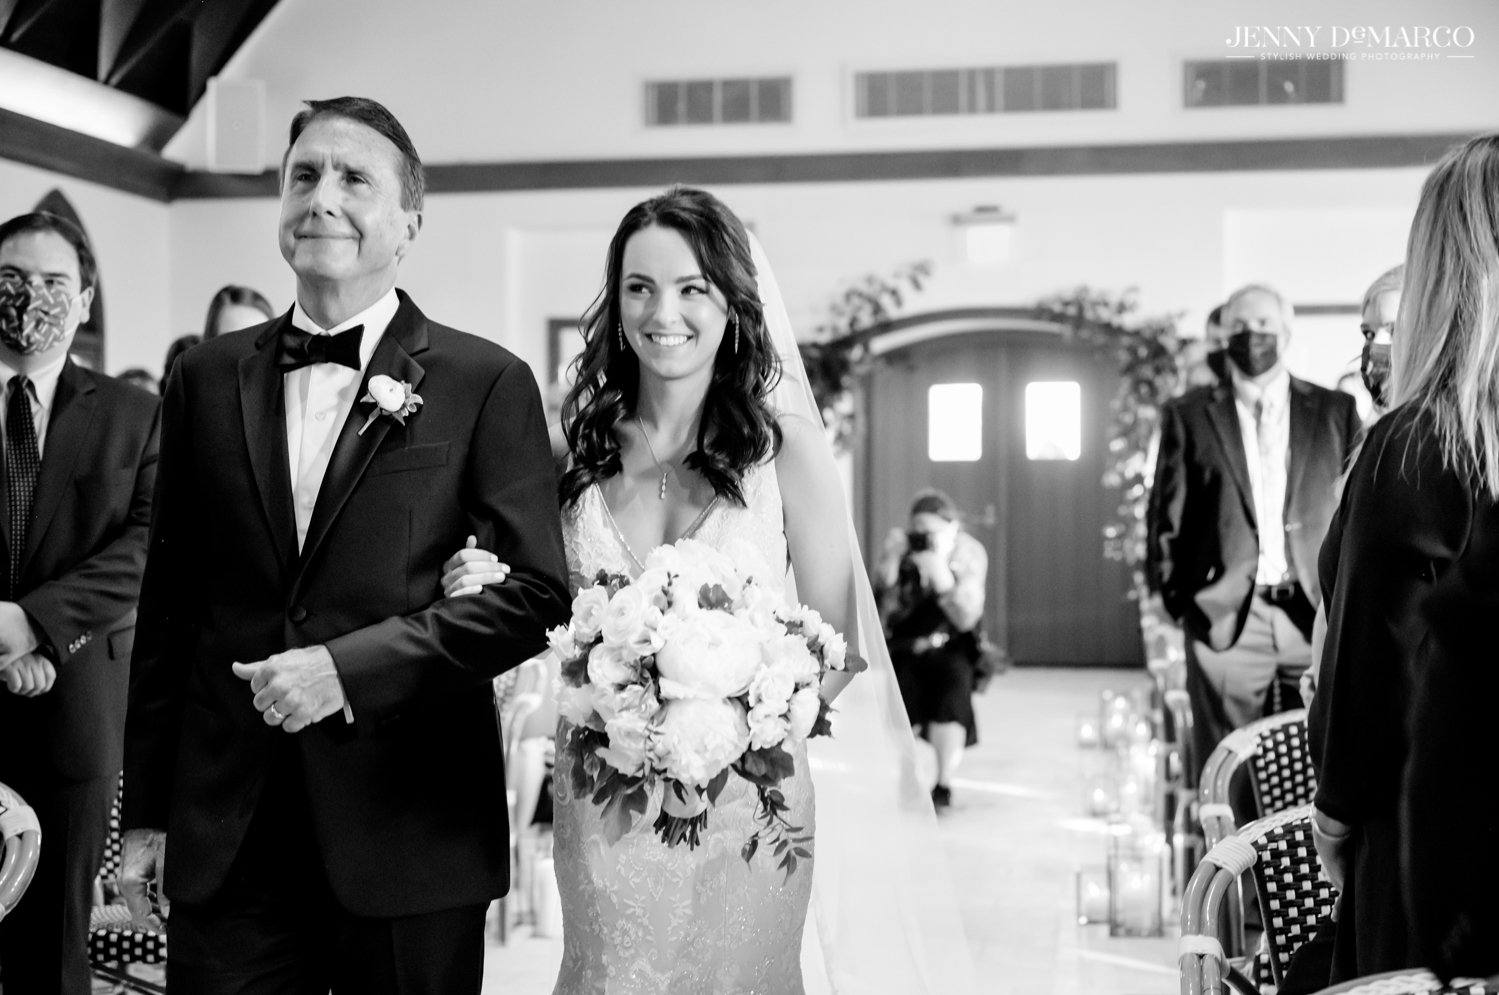 father of the bride smiling as he walks his smiling daughter down the aisle